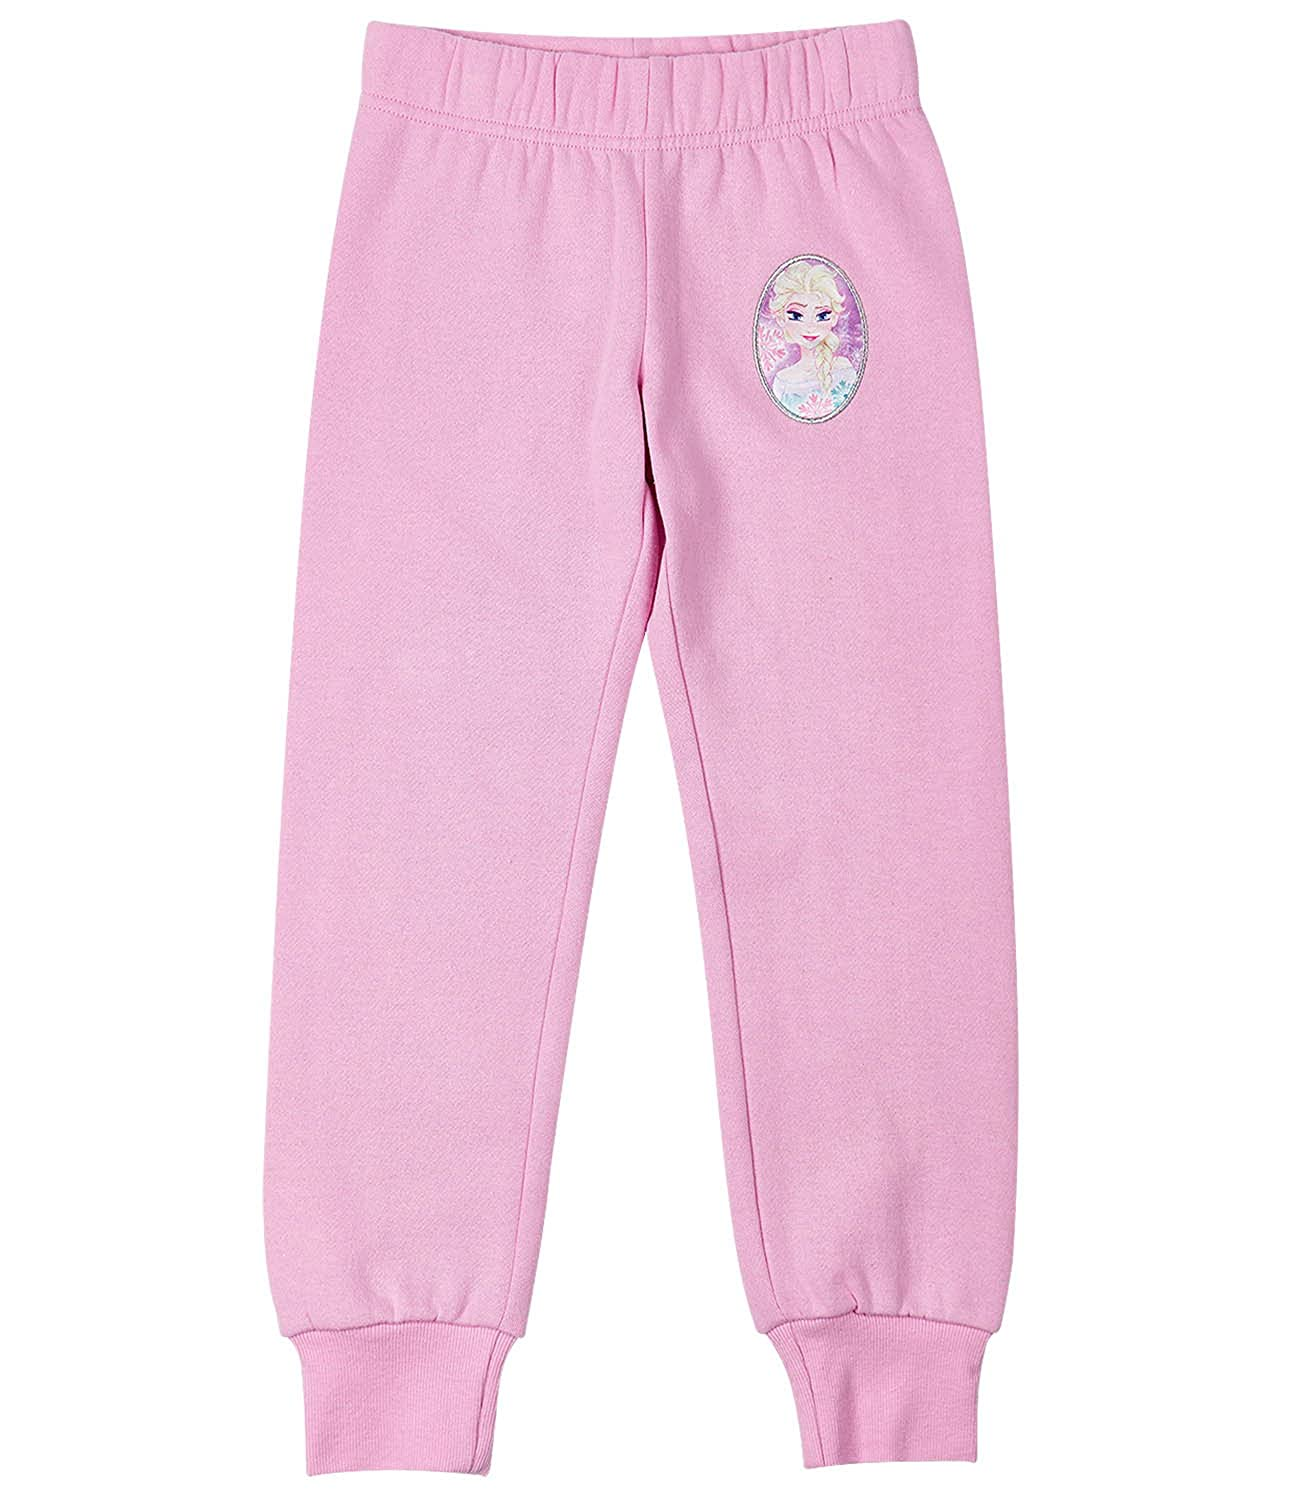 Disney Frozen Elsa & Anna Girls Jogging Pants - Pink 161246